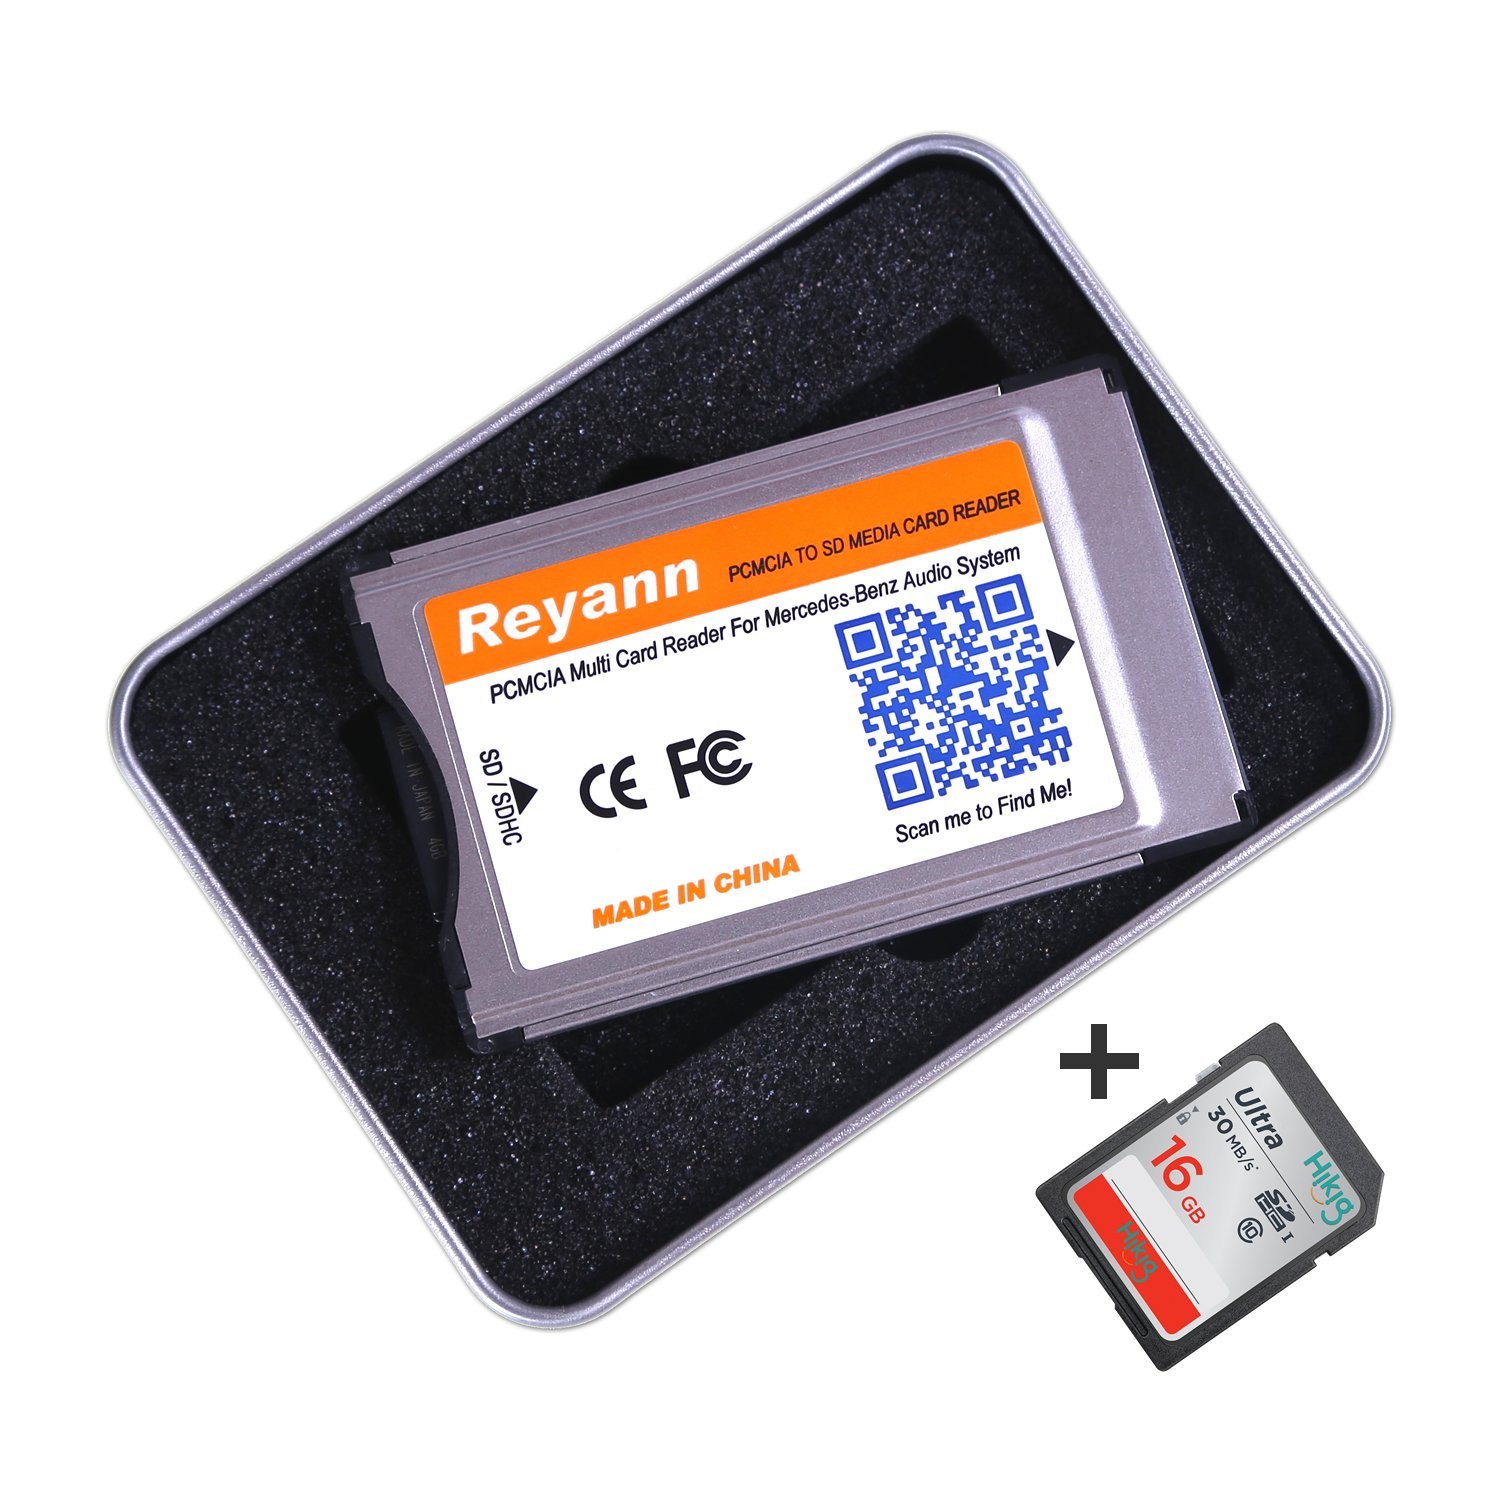 Hikig PCMCIA Convert to SD/SDHC Card Adaptor For Mercedes Benz C, E, S, GLK, CLS Class COMAND APS System with PCMCIA Slot support 32GB SDHC (PCMCIA + 16G)